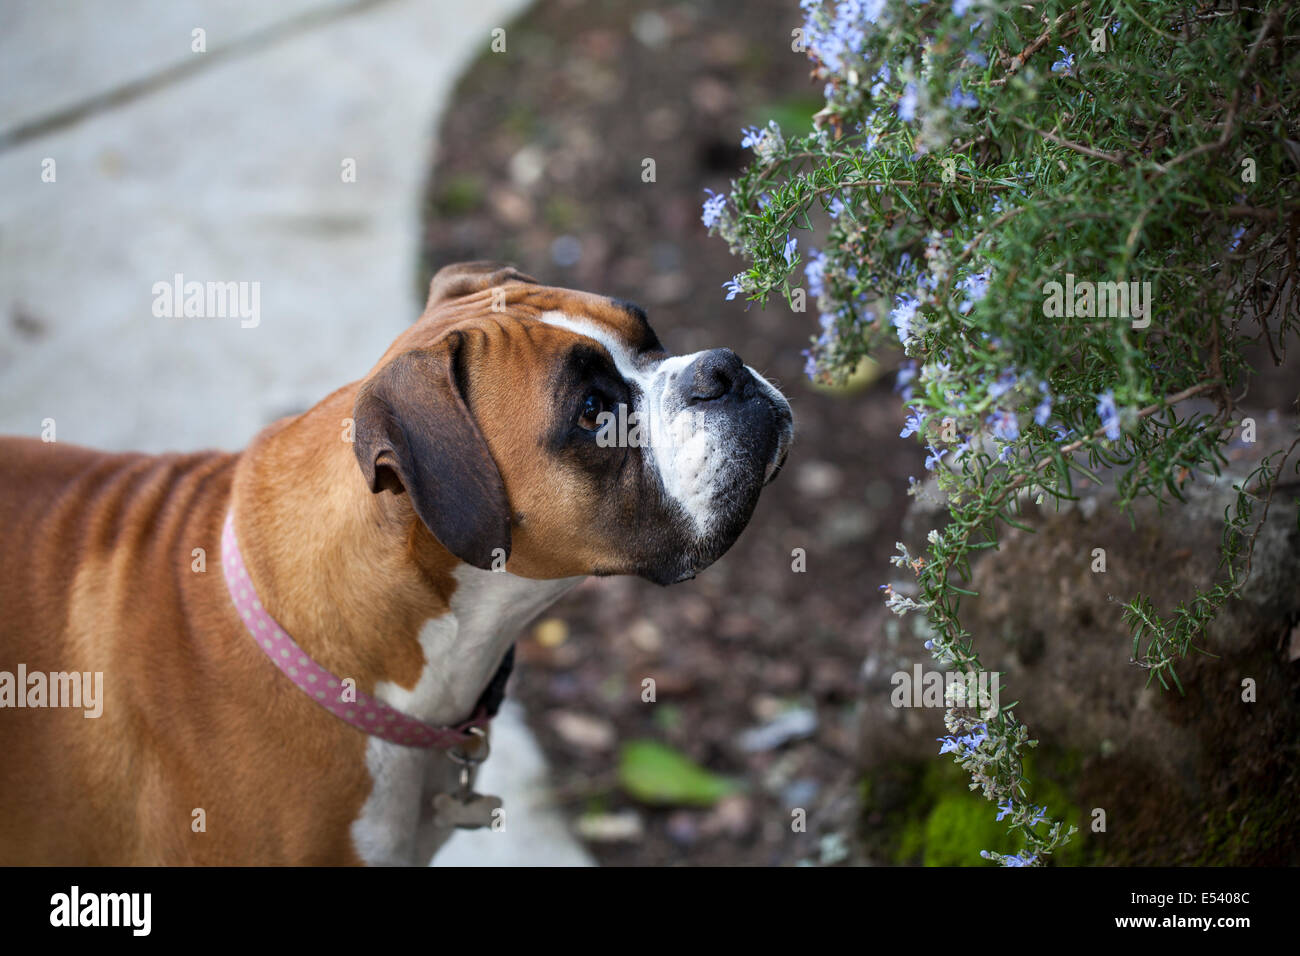 Boxer dog sniffing on the rosemary plant, Novato, Marin County, California, USA - Stock Image